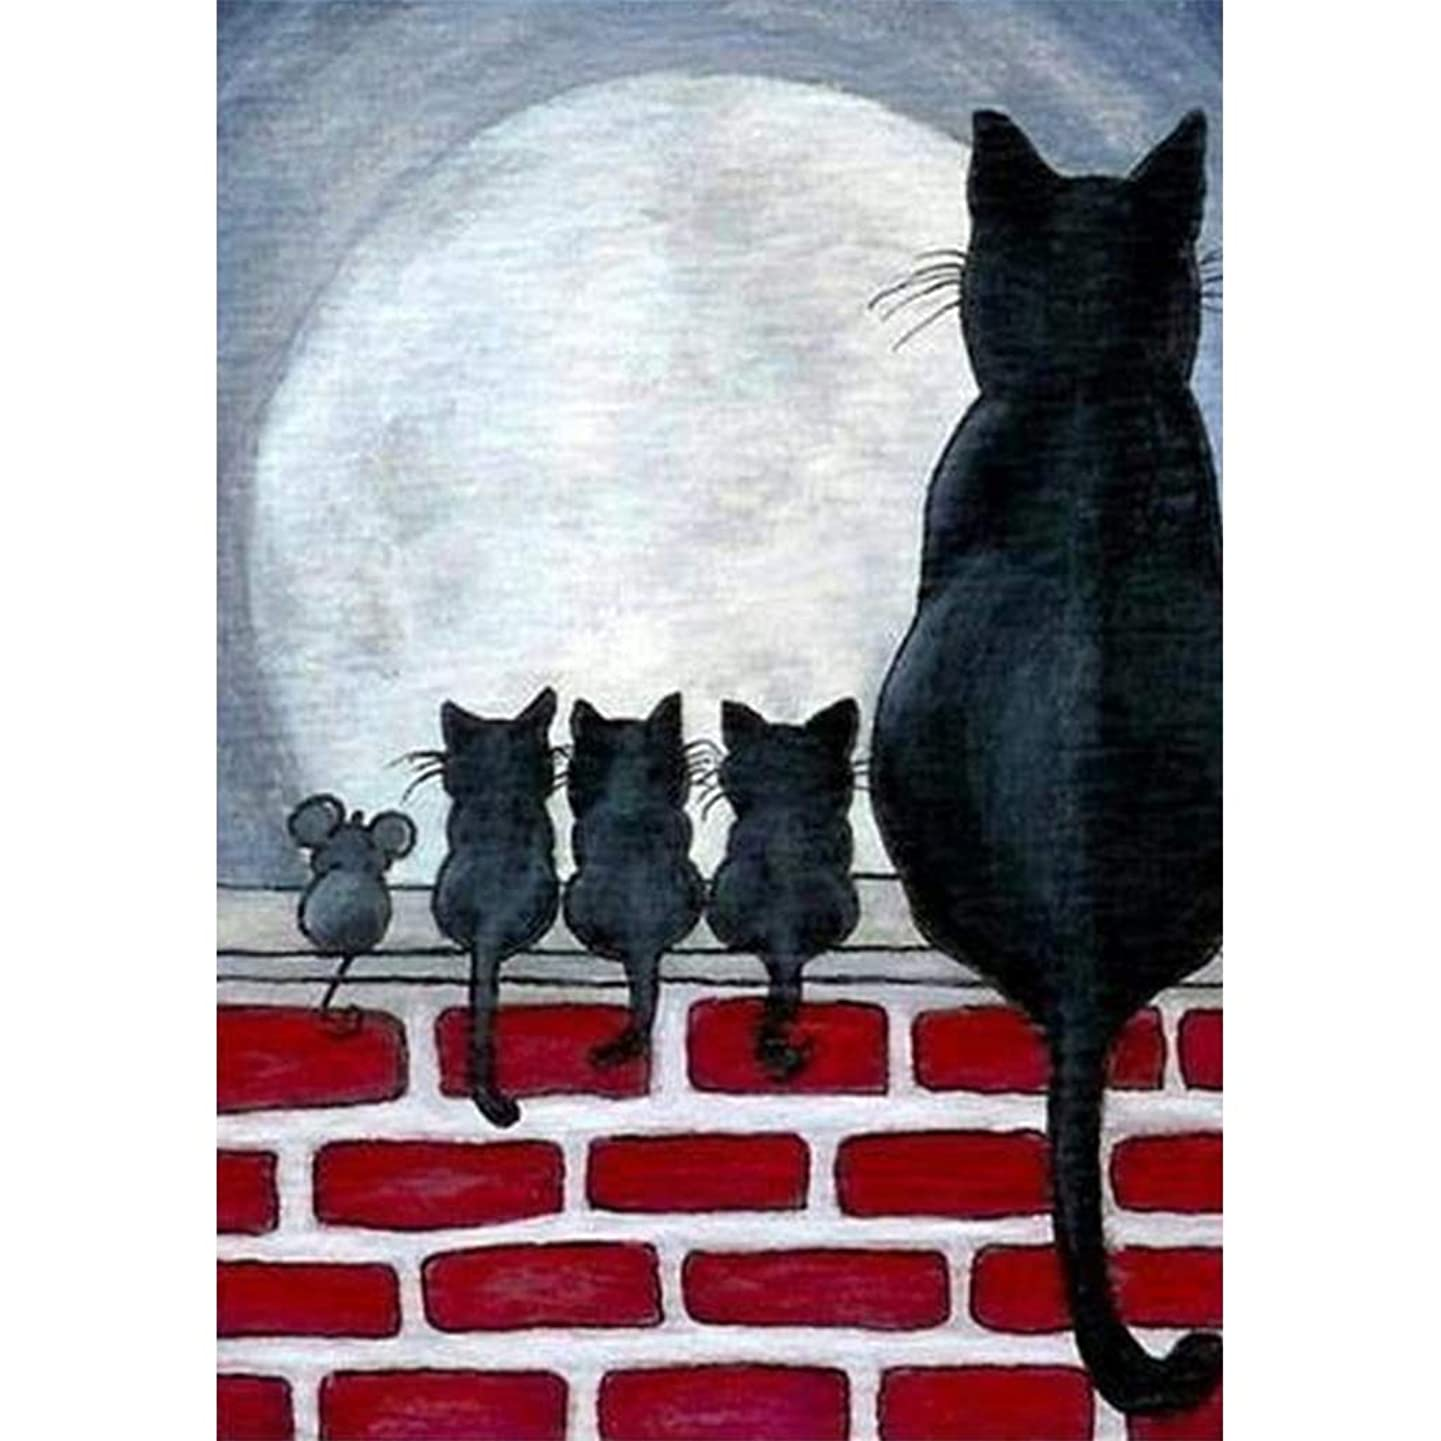 5D DIY Full Diamond Painting Kit Cat Back Diamonds Embroidery by Numbers Wall Diamond Art for Adult (11.8X15.7inch)